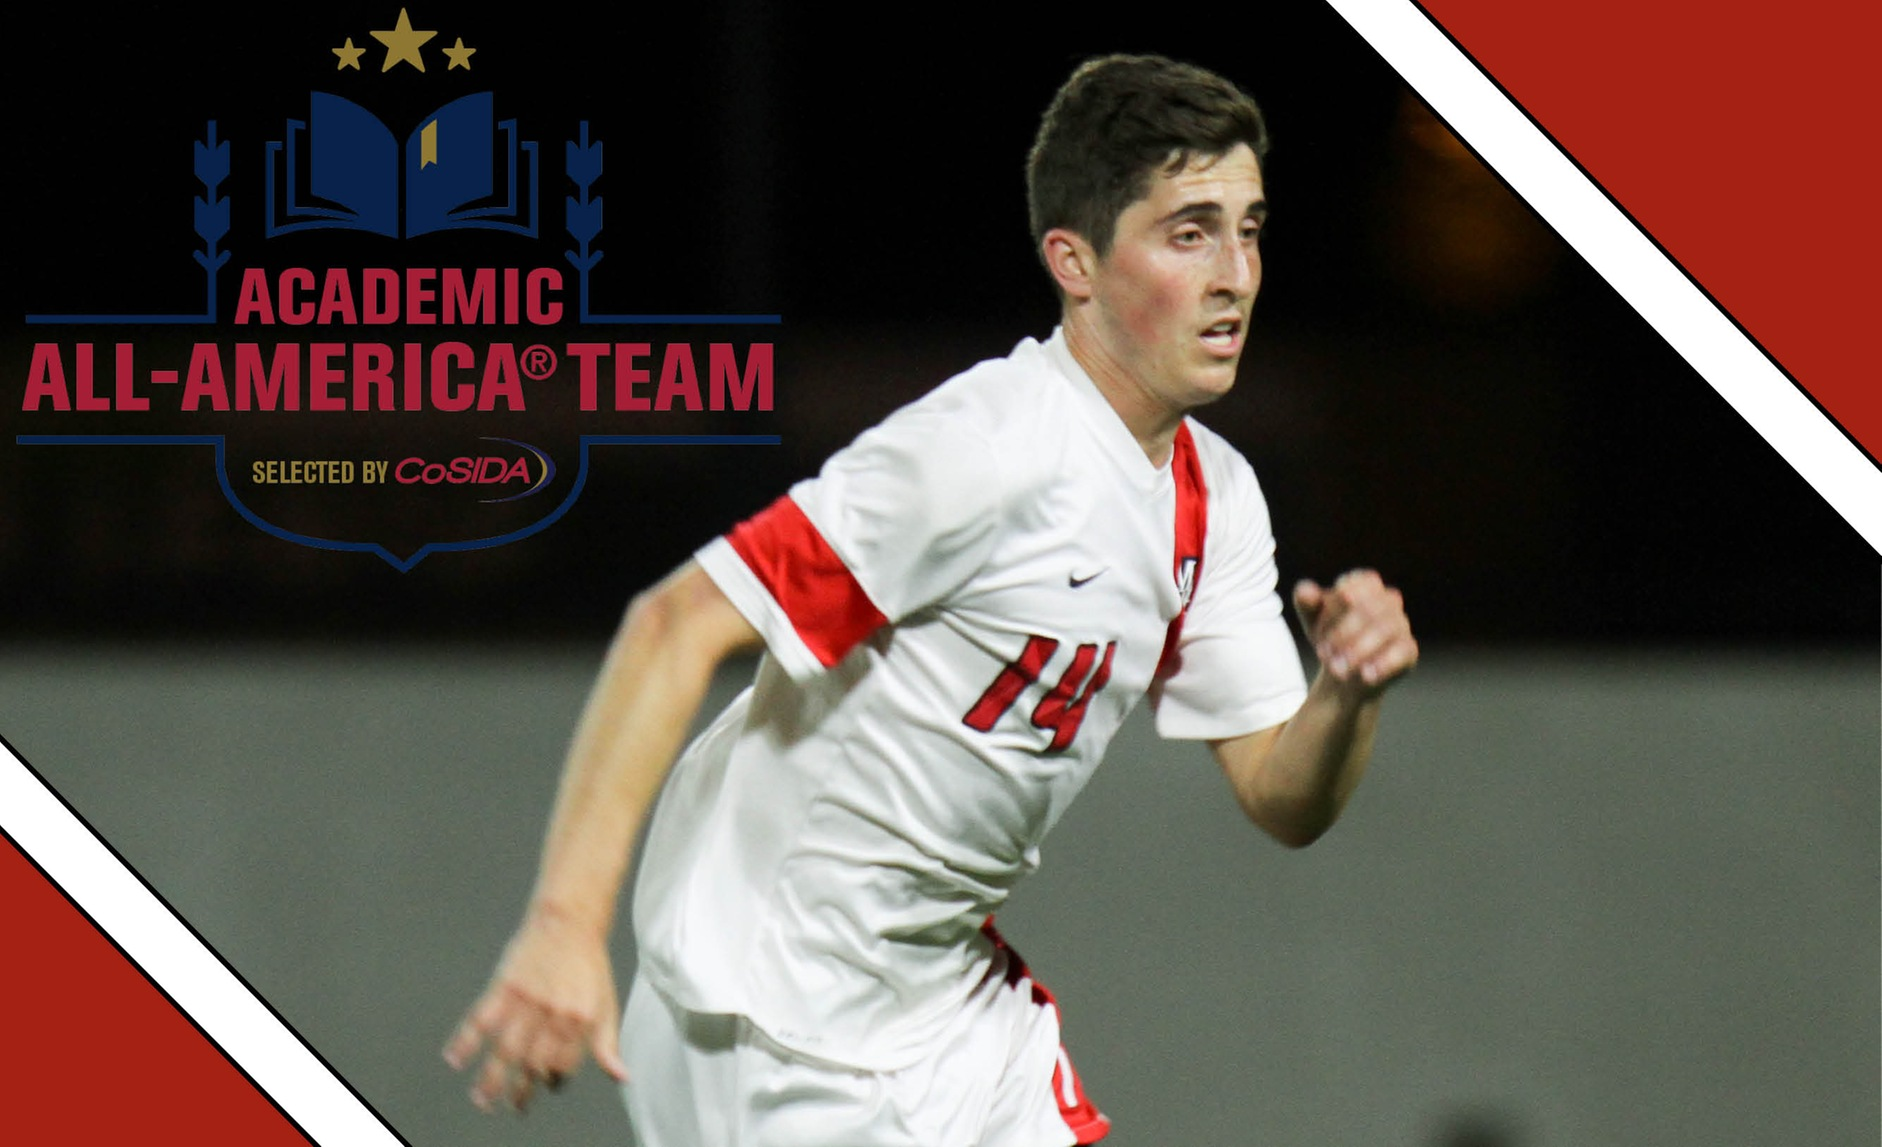 Andryk Repeats as CoSIDA Academic All-American